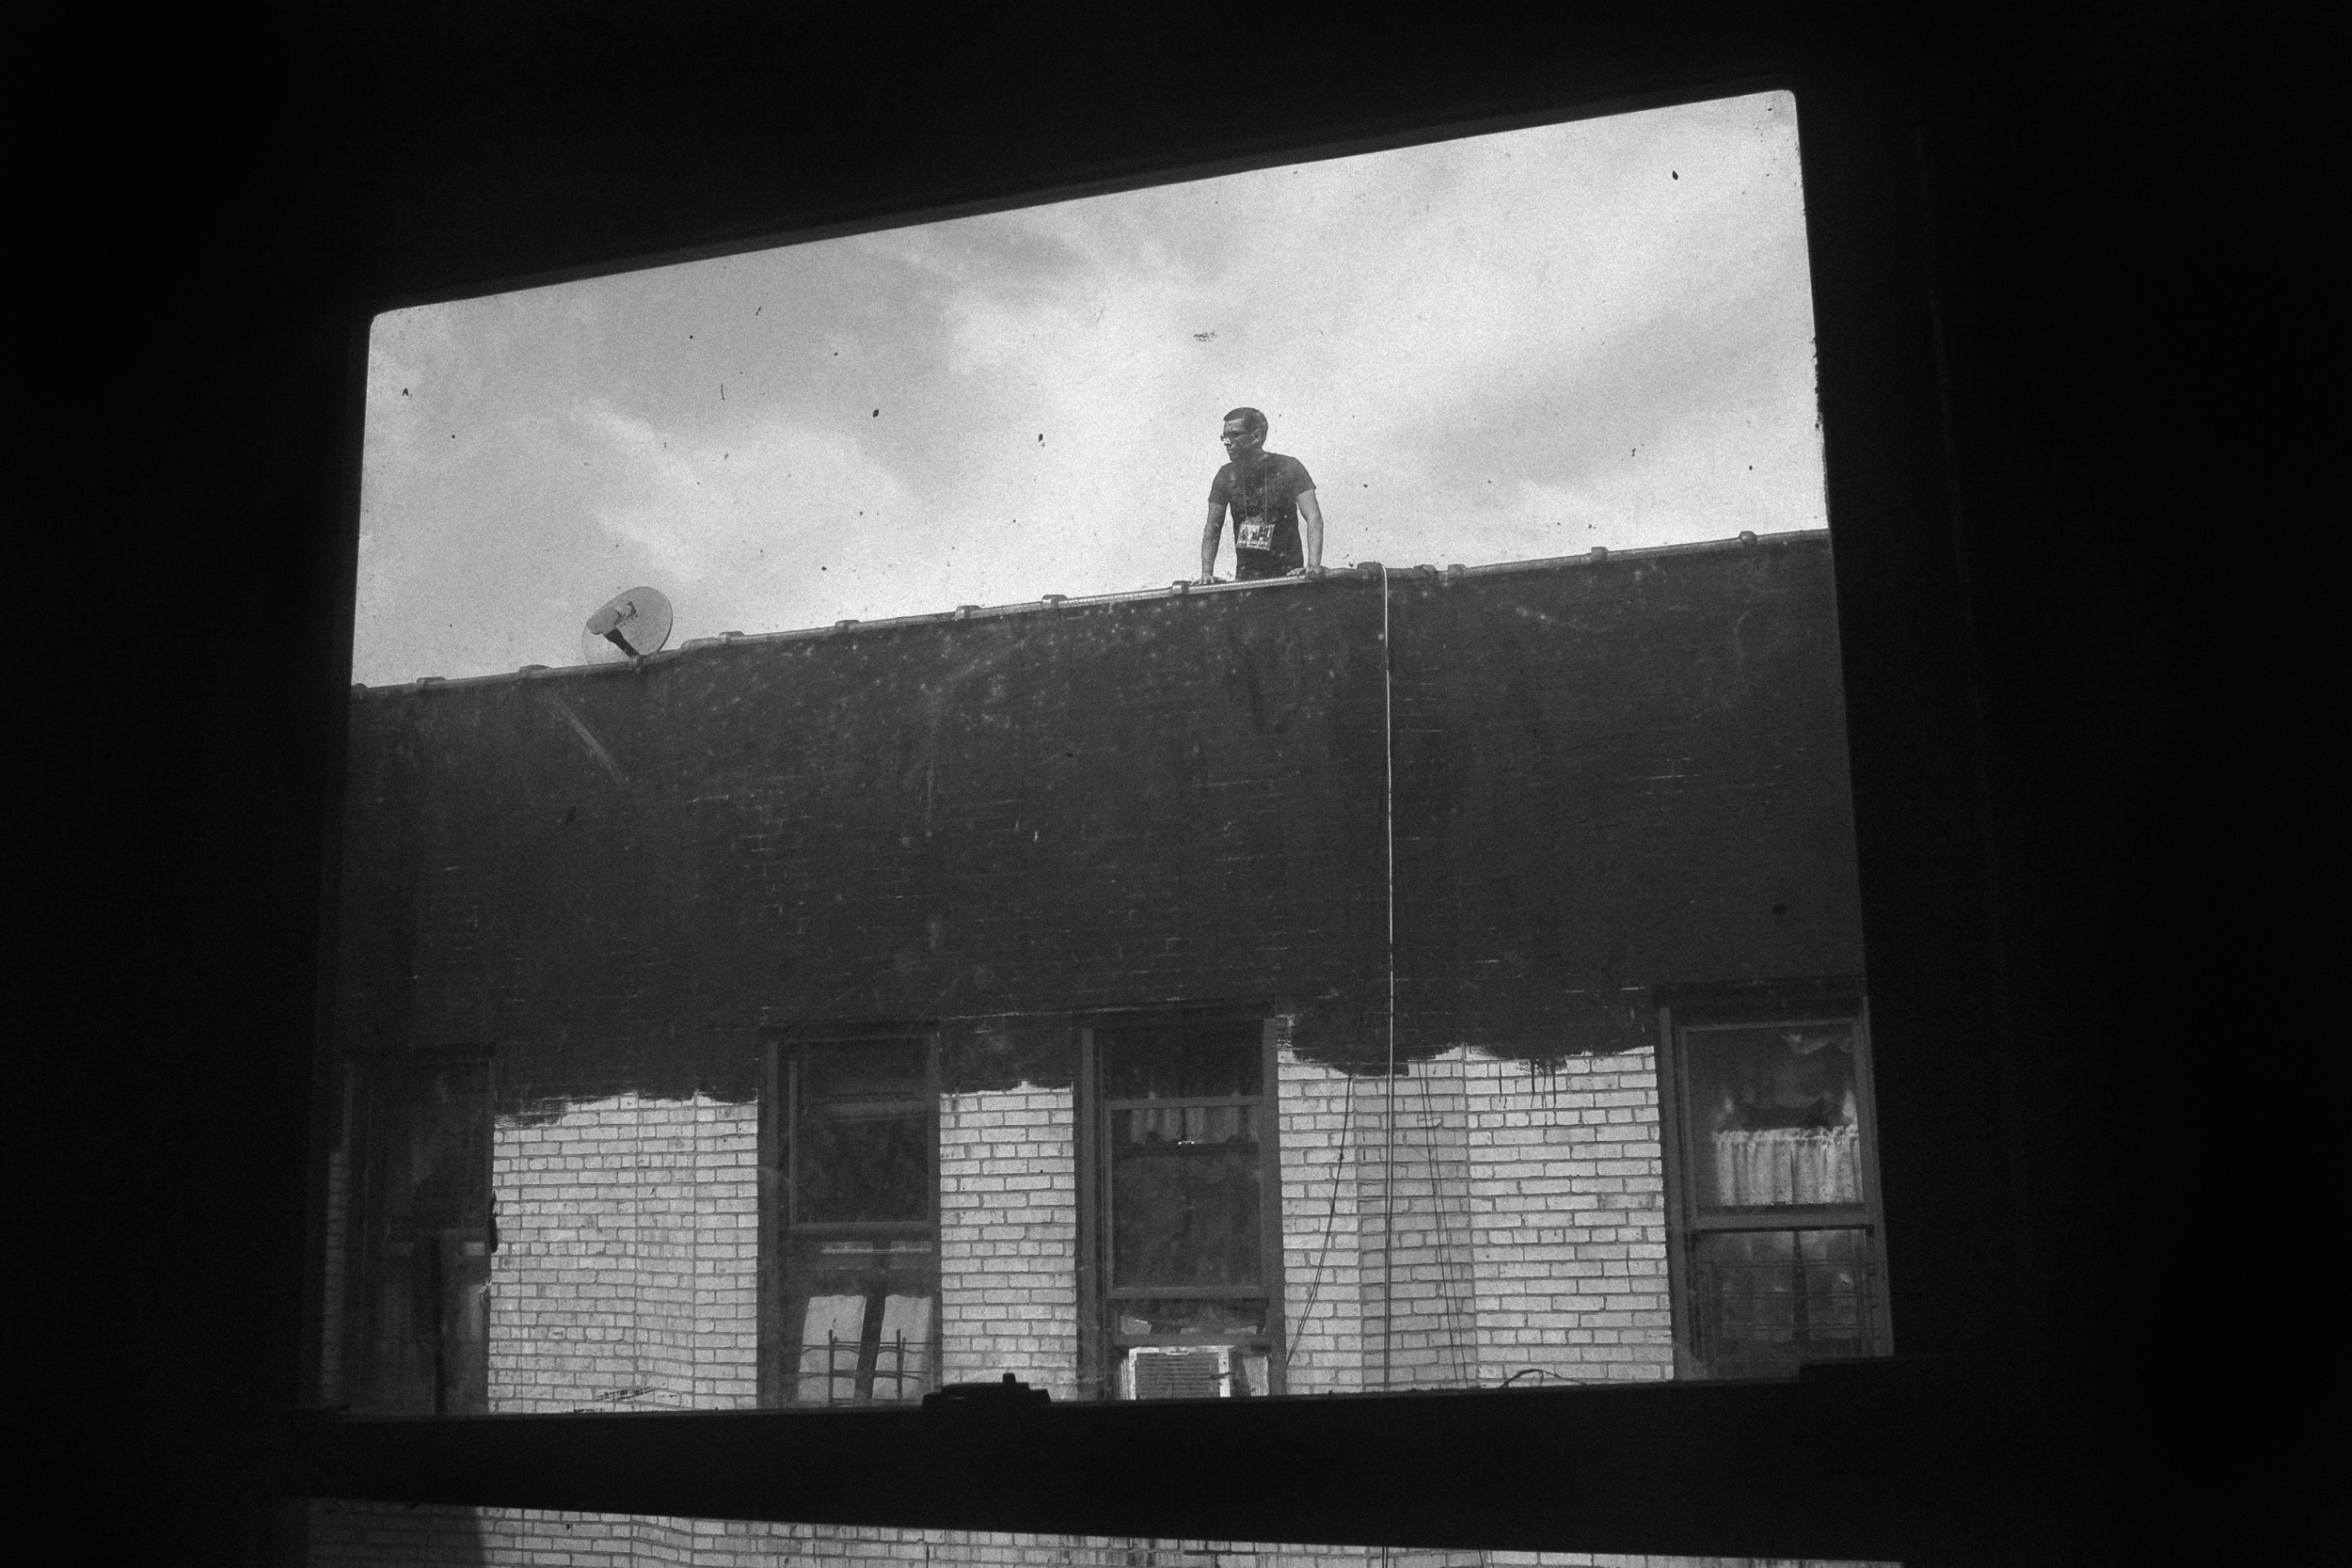 LOVE LIVES. Angel on rooftop. Hunts Point, the Bronx, NYC. September 2012.